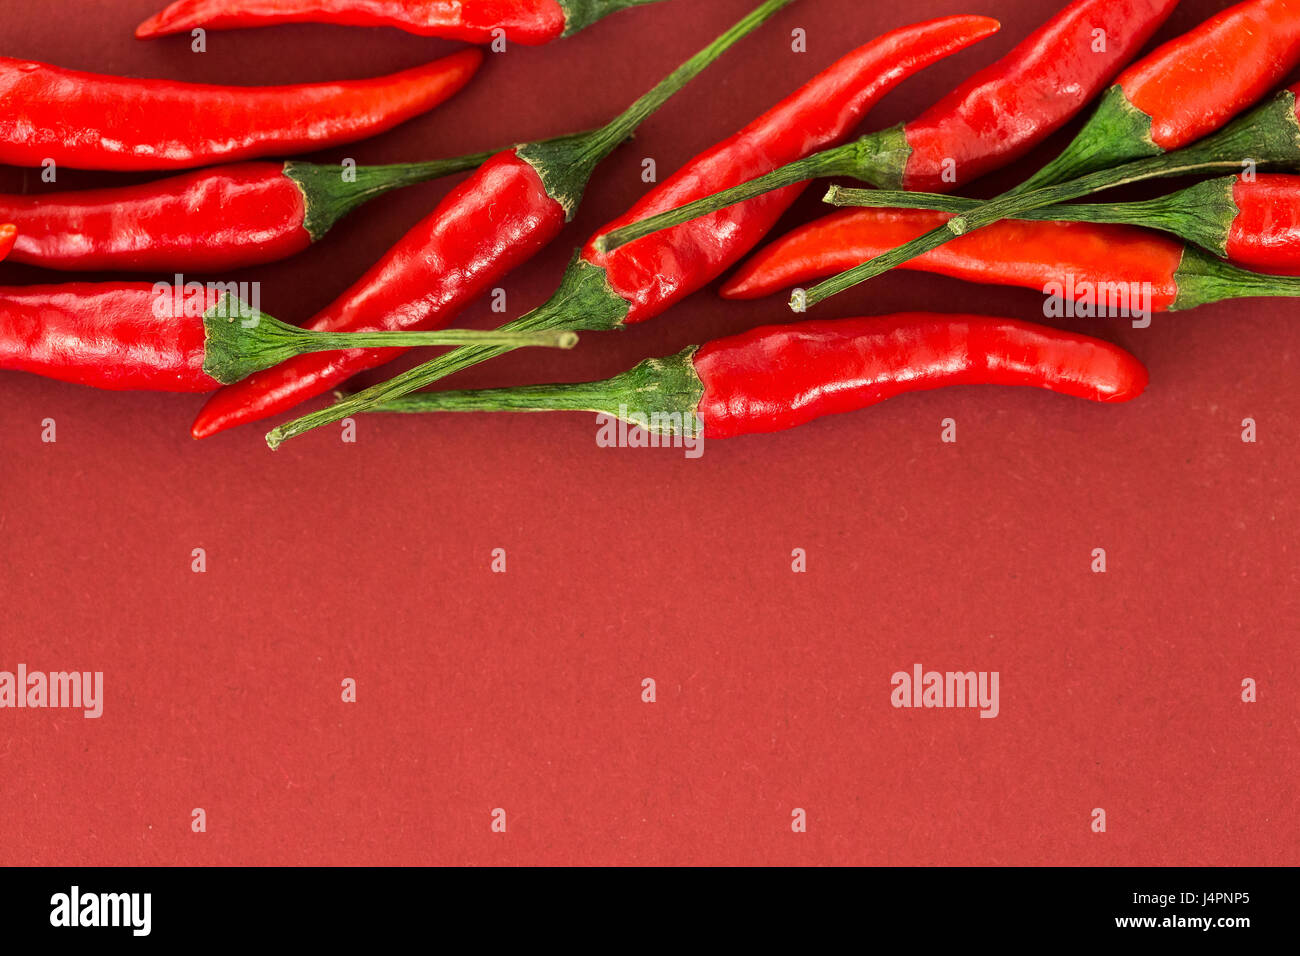 red hot chili peppers, popular spices concept - close-up on a beautiful handful of red hot pepper pods scattered - Stock Image